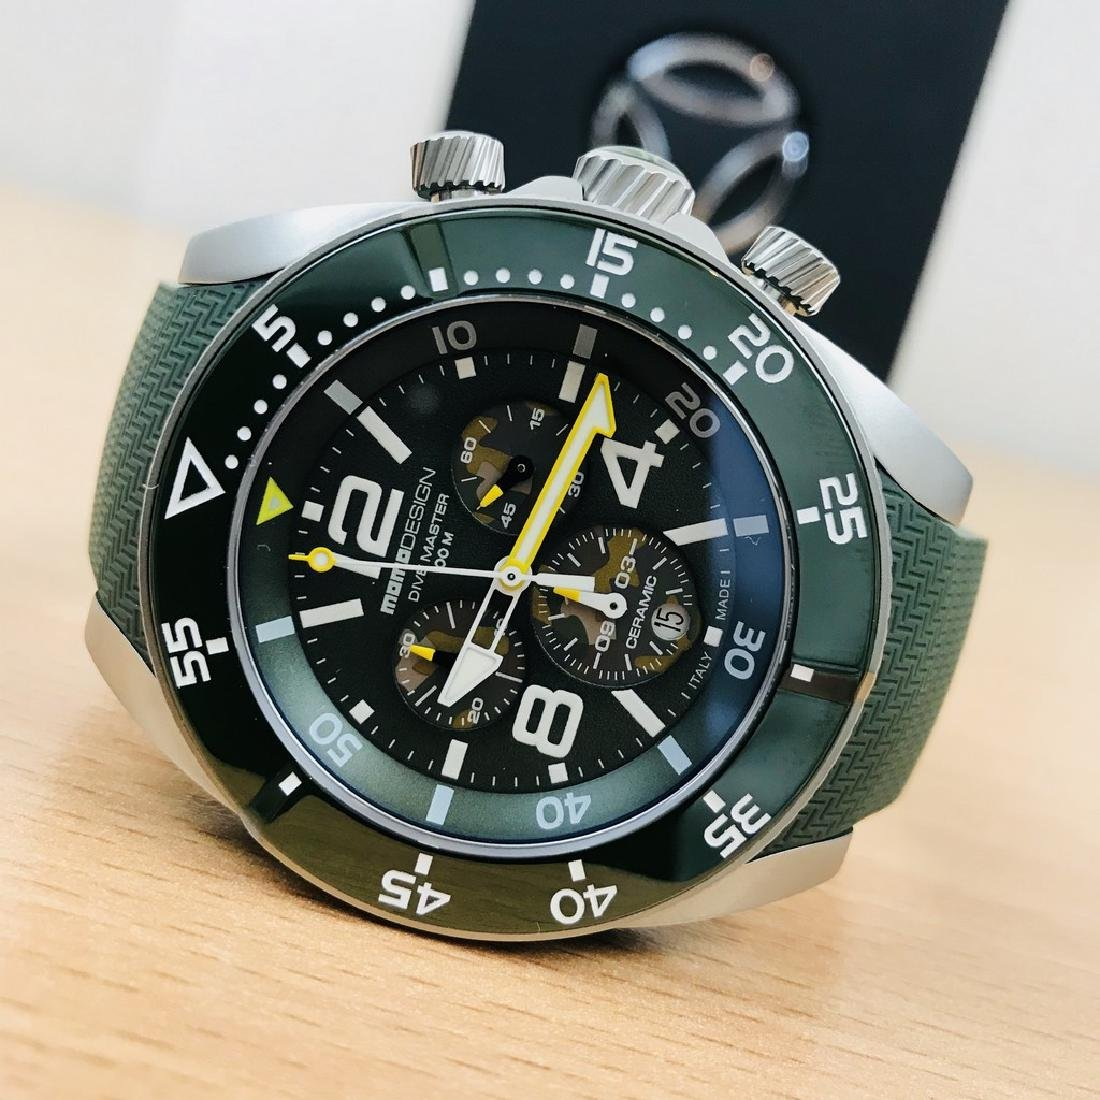 MomoDesign – Diver Master Sport Swiss Chronograph RRP: